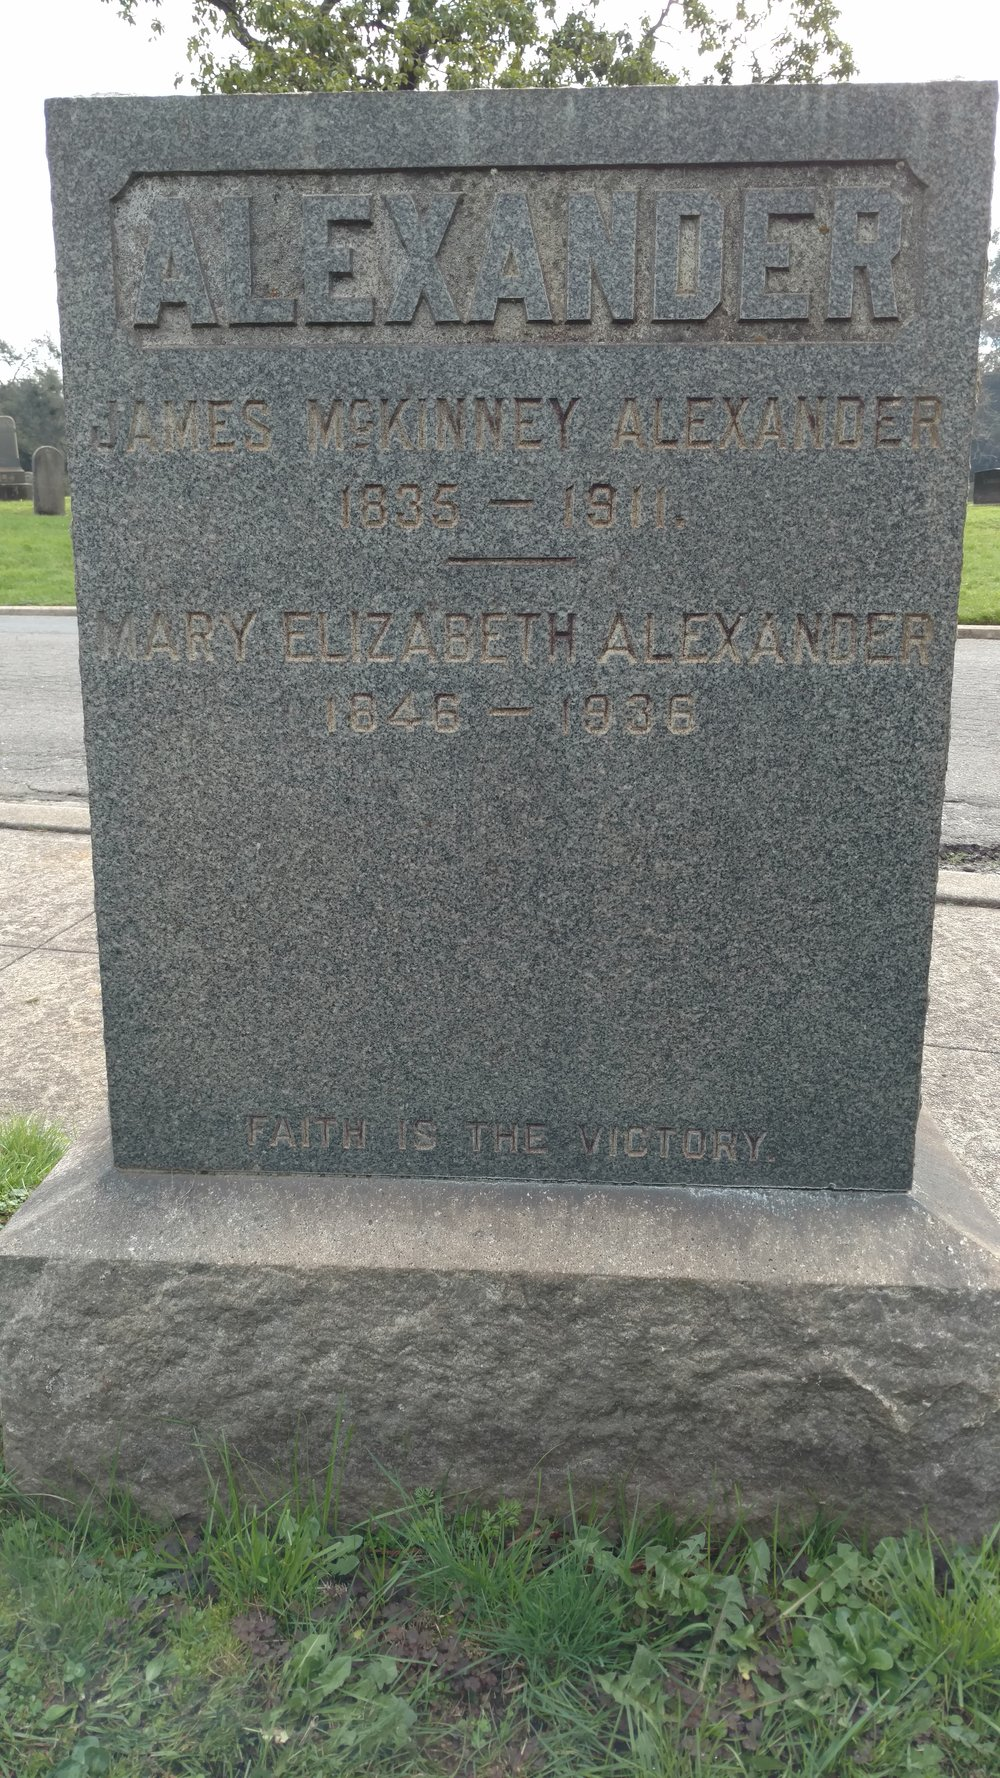 James McKinney Alexander is buried at Mountain View Cemetery, Oakland, California.